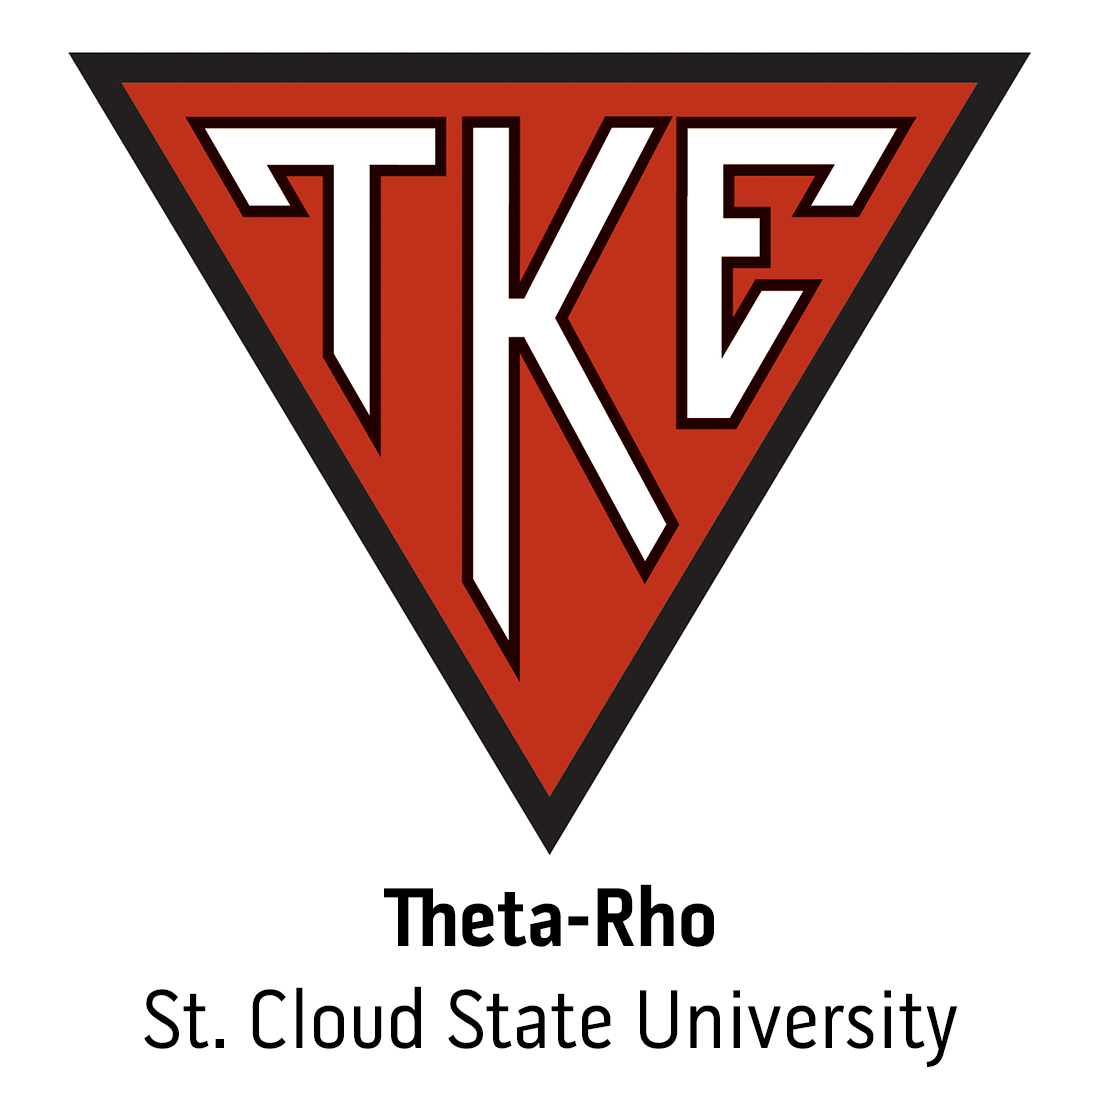 Theta-Rho Chapter at St. Cloud State University